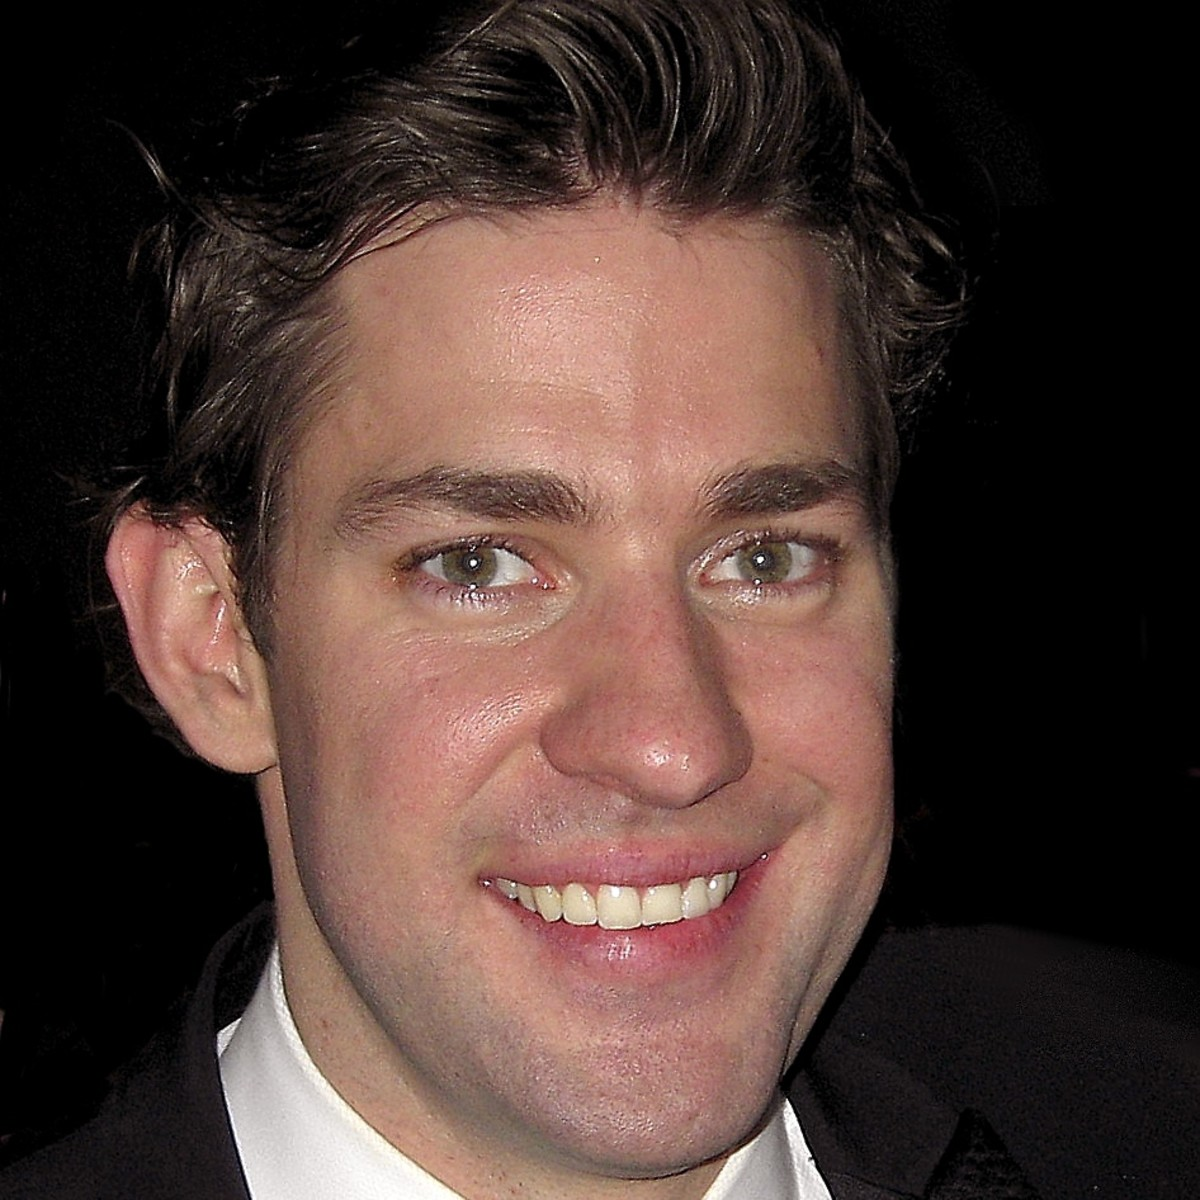 DO NOT USE: John Krasinski